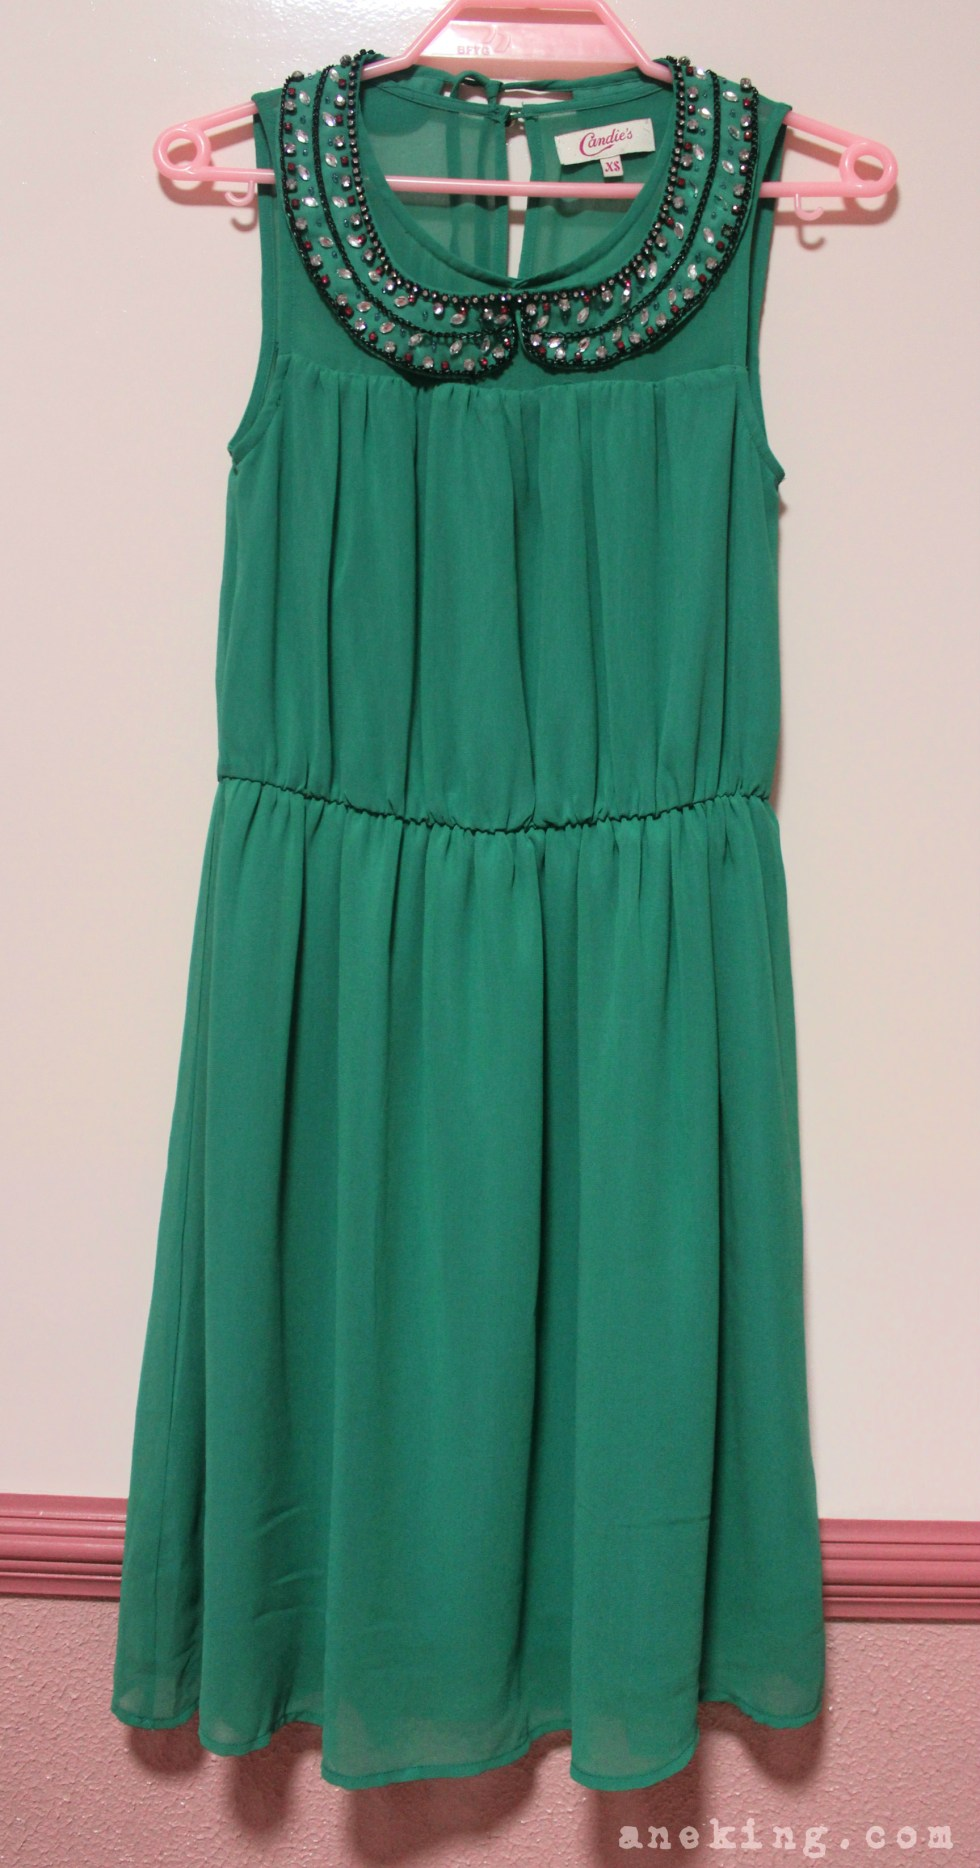 candies green dress